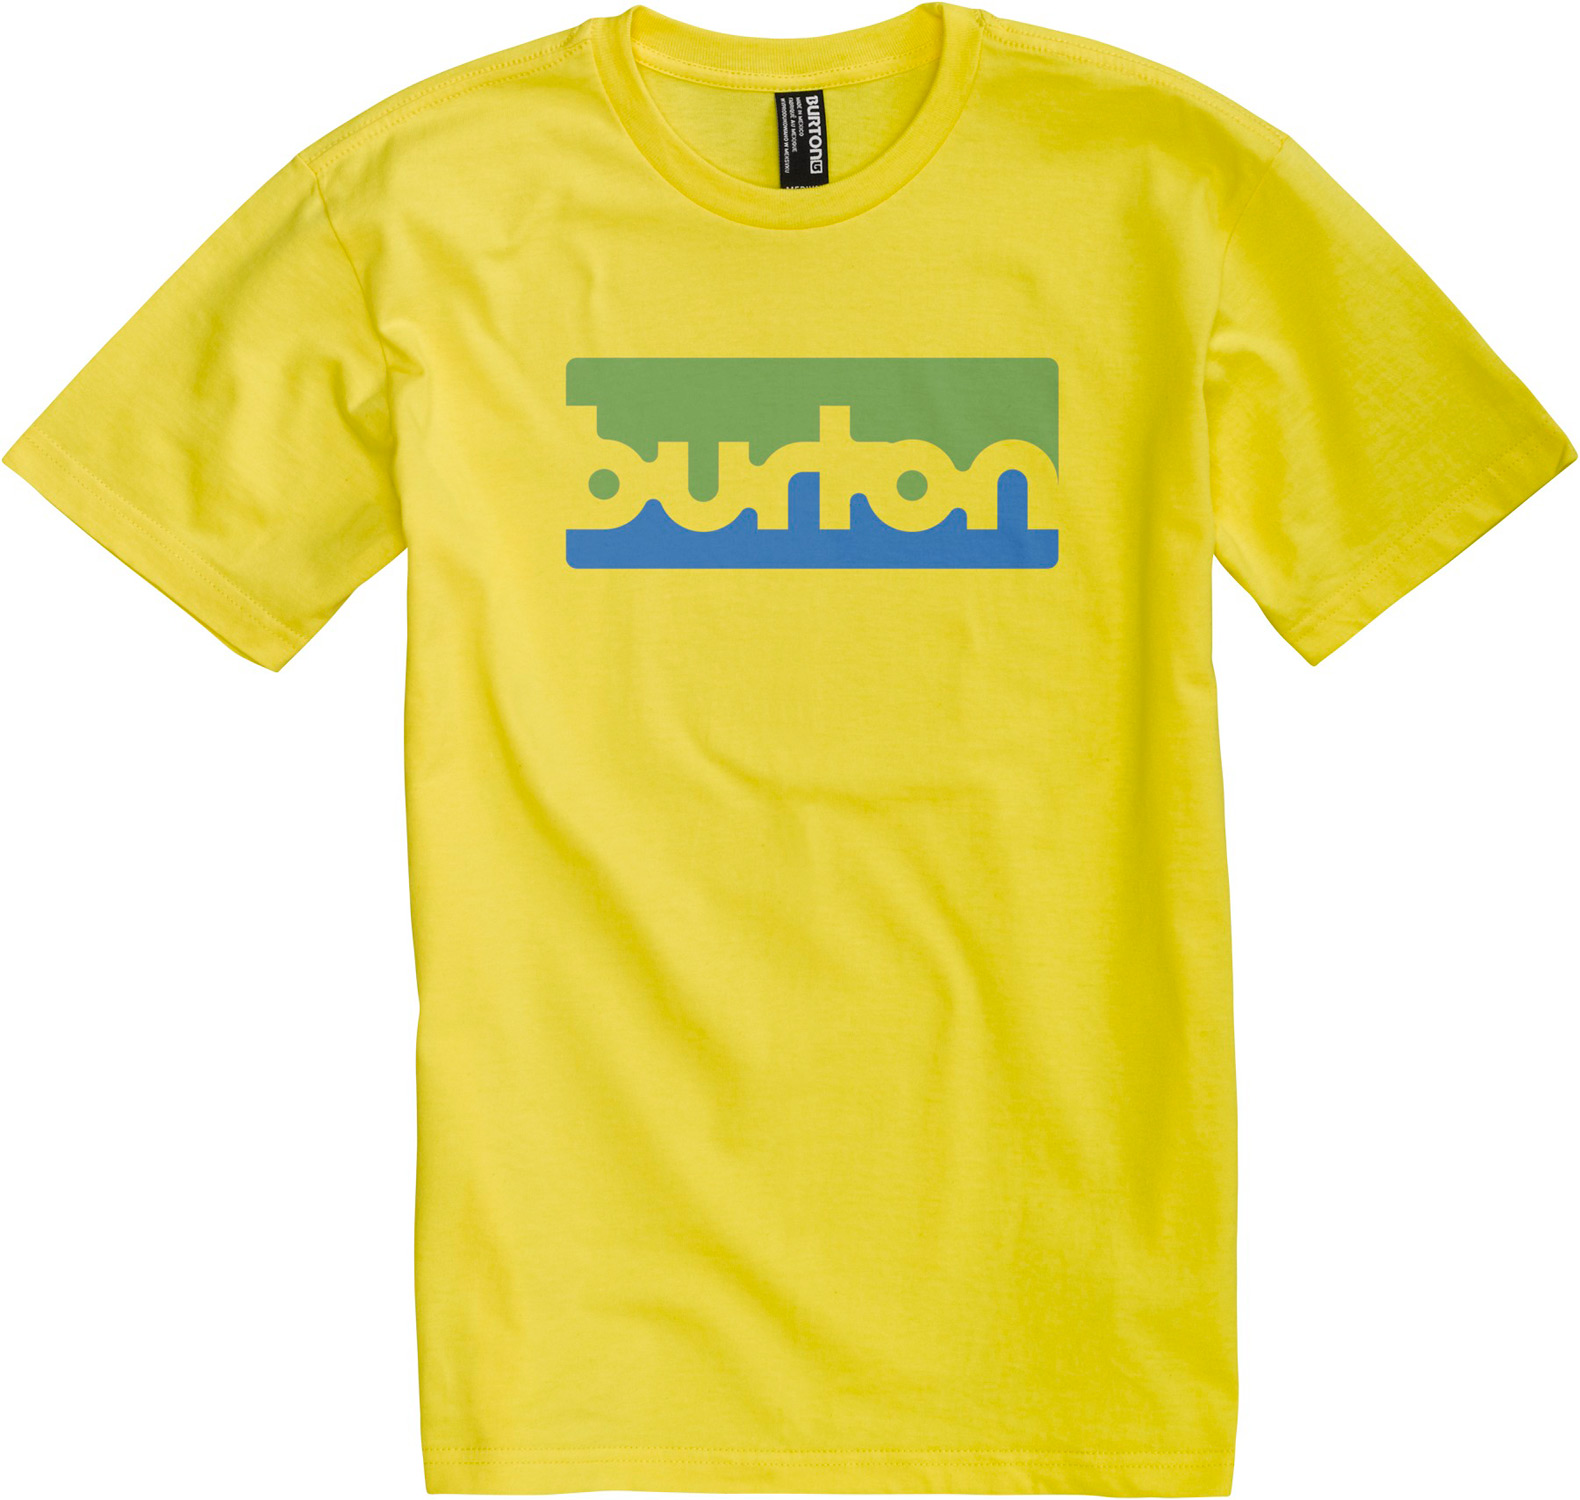 Snowboard This Burton Transmission T-Shirt features short-sleeves crew neck. It looks bright and fresh and will attract attention wherever you go. It is perfect for active individuals. It is screen printed on both the front and the back. You can't go wrong with this shirt. This graphic T-shirt is an essential item to have in your collection.  Regular Fit   Crew Neck   Short Sleeve   90% cotton/10% polyester [Athletic Heather]   100% cotton   Screen print on front and back   Regular fit - $12.95